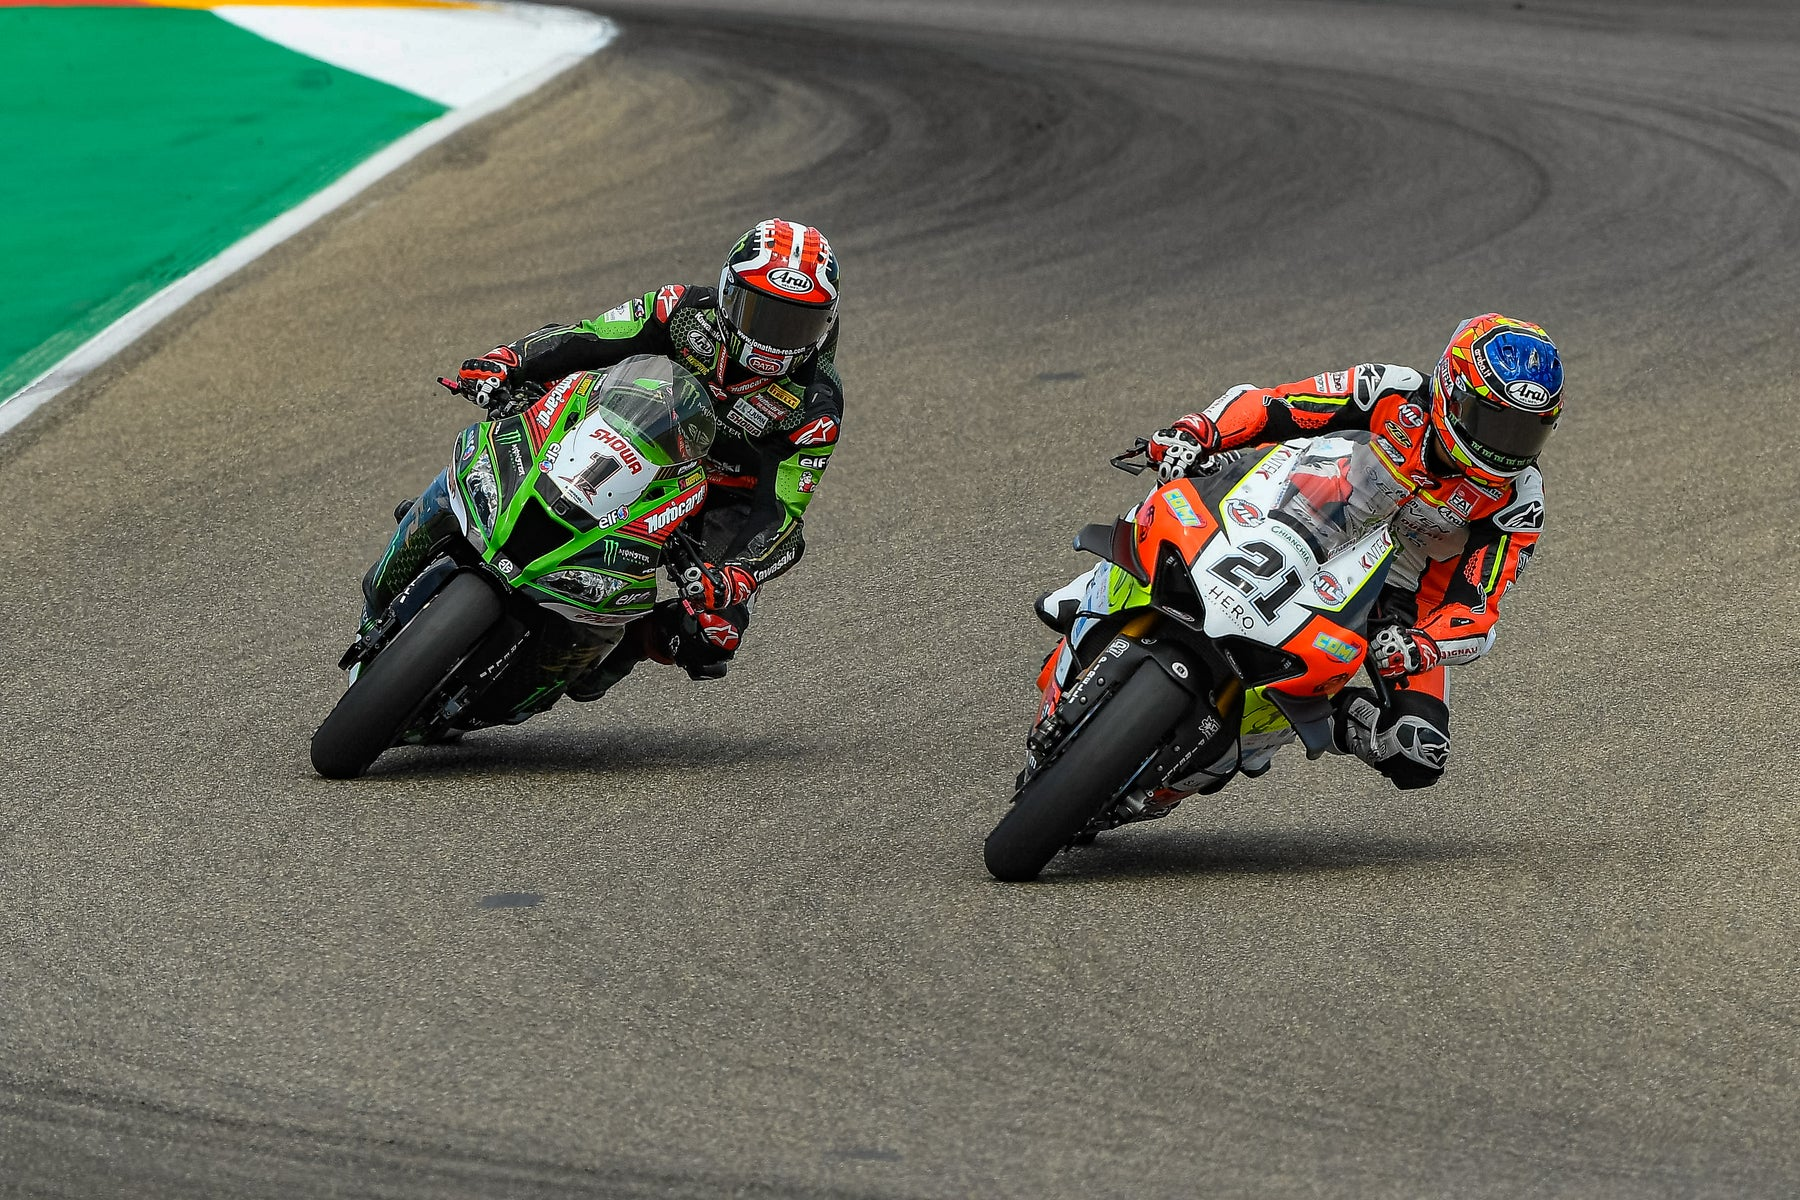 JONATHAN REA & MICHAEL RINALDI ROMP TO VICTORY IN WORLDSBK AT ARAGON